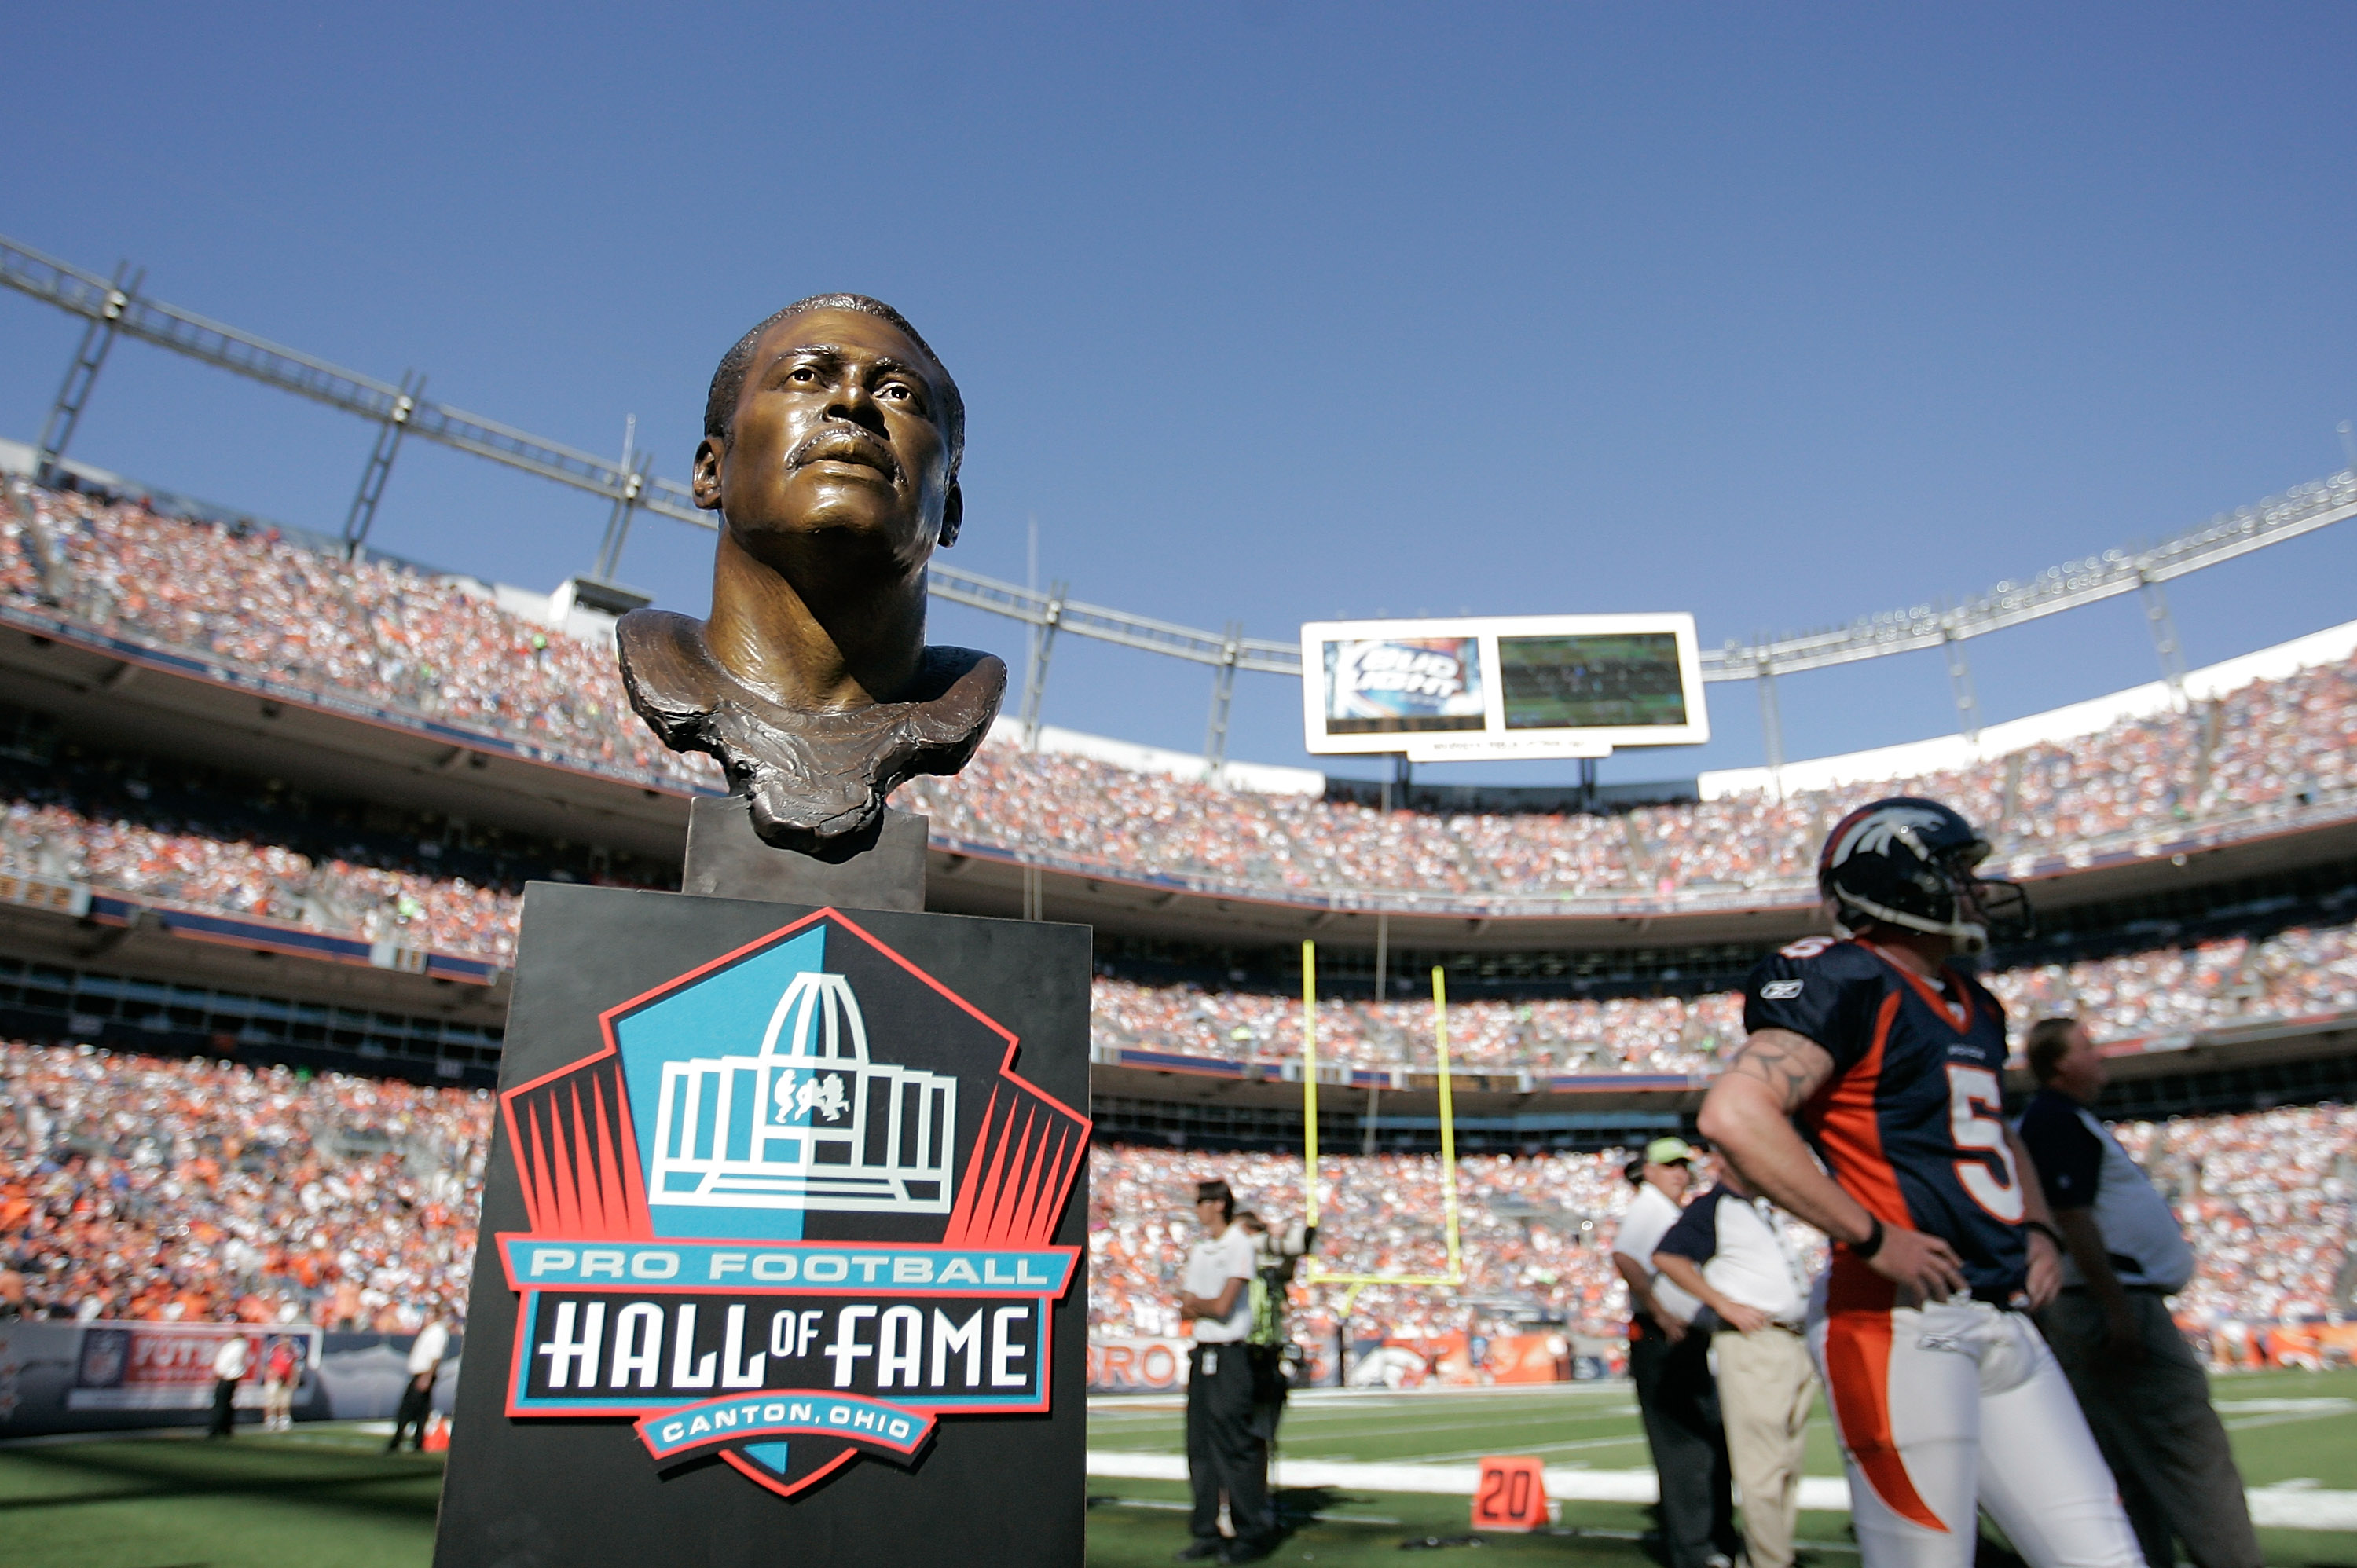 DENVER - SEPTEMBER 26:  A bronze statue of former Denver Broncos player and current Hall of Fame member Floyd Little waits on the sidelines before a ceremony to honor him at halftime against the Indianapolis Colts at INVESCO Field at Mile High on Septembe